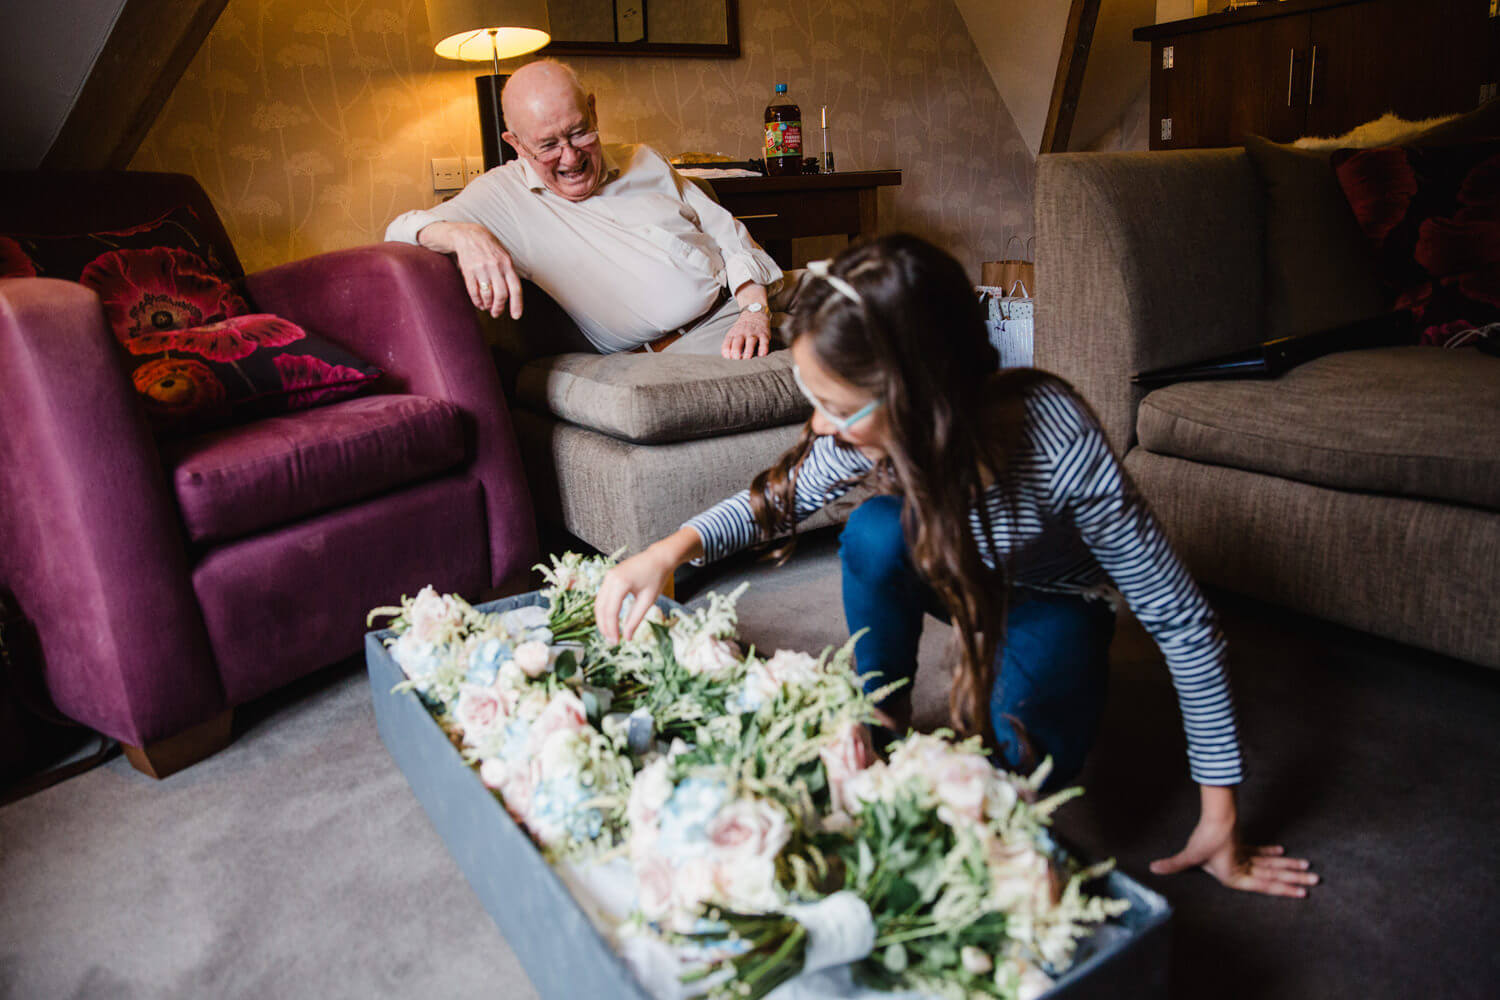 photograph in dining room of grandfather watching flower lounge girl arrange bouquets